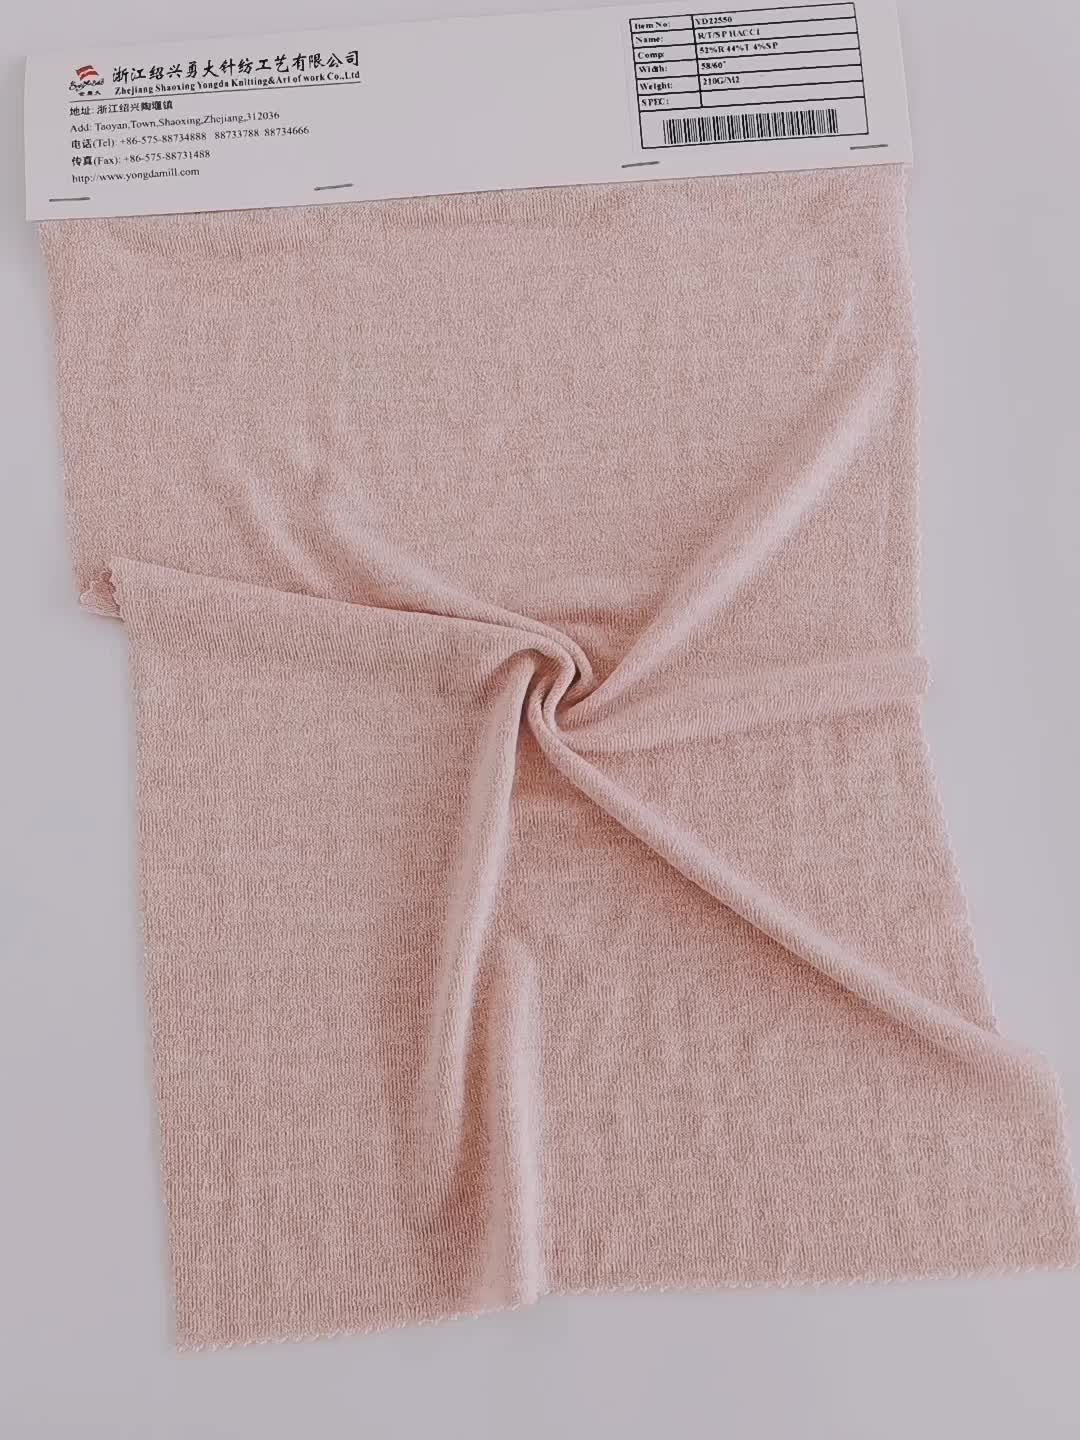 Nondestructive hacci polyester price per meter fabric rayon with high strength